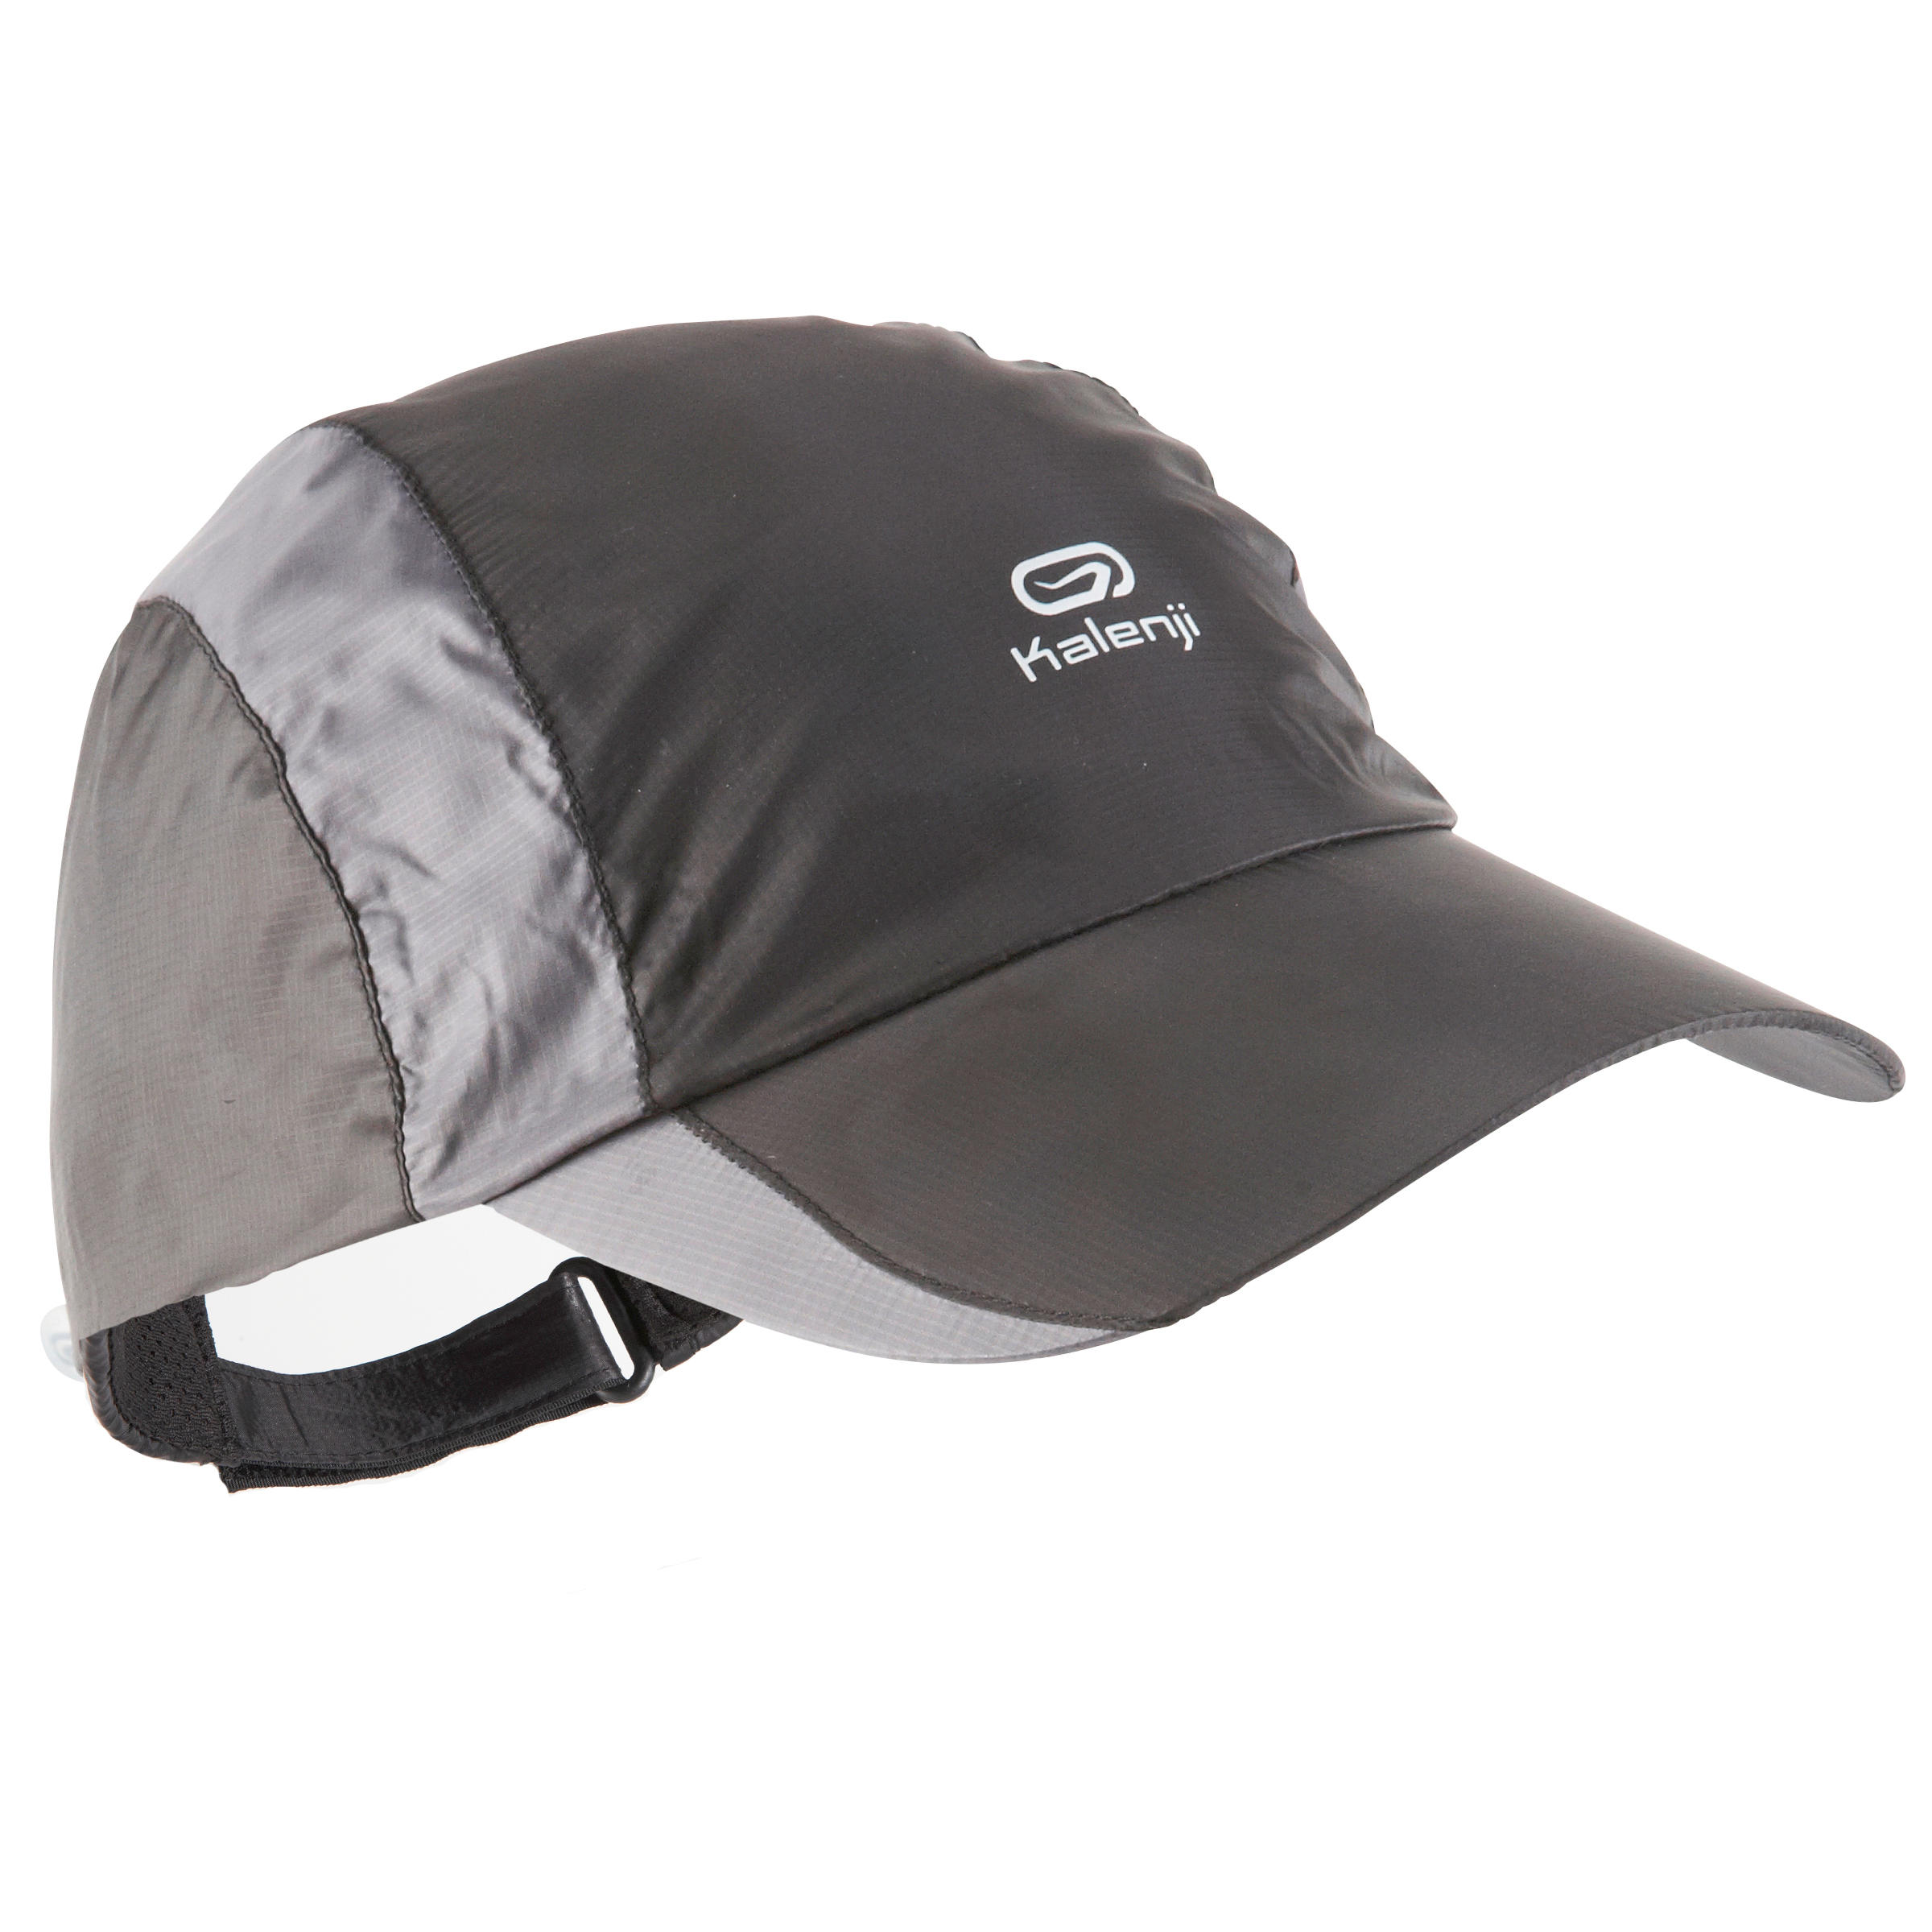 RUNNING RAIN CAP BLACK ADJUSTABLE 55-63 cm